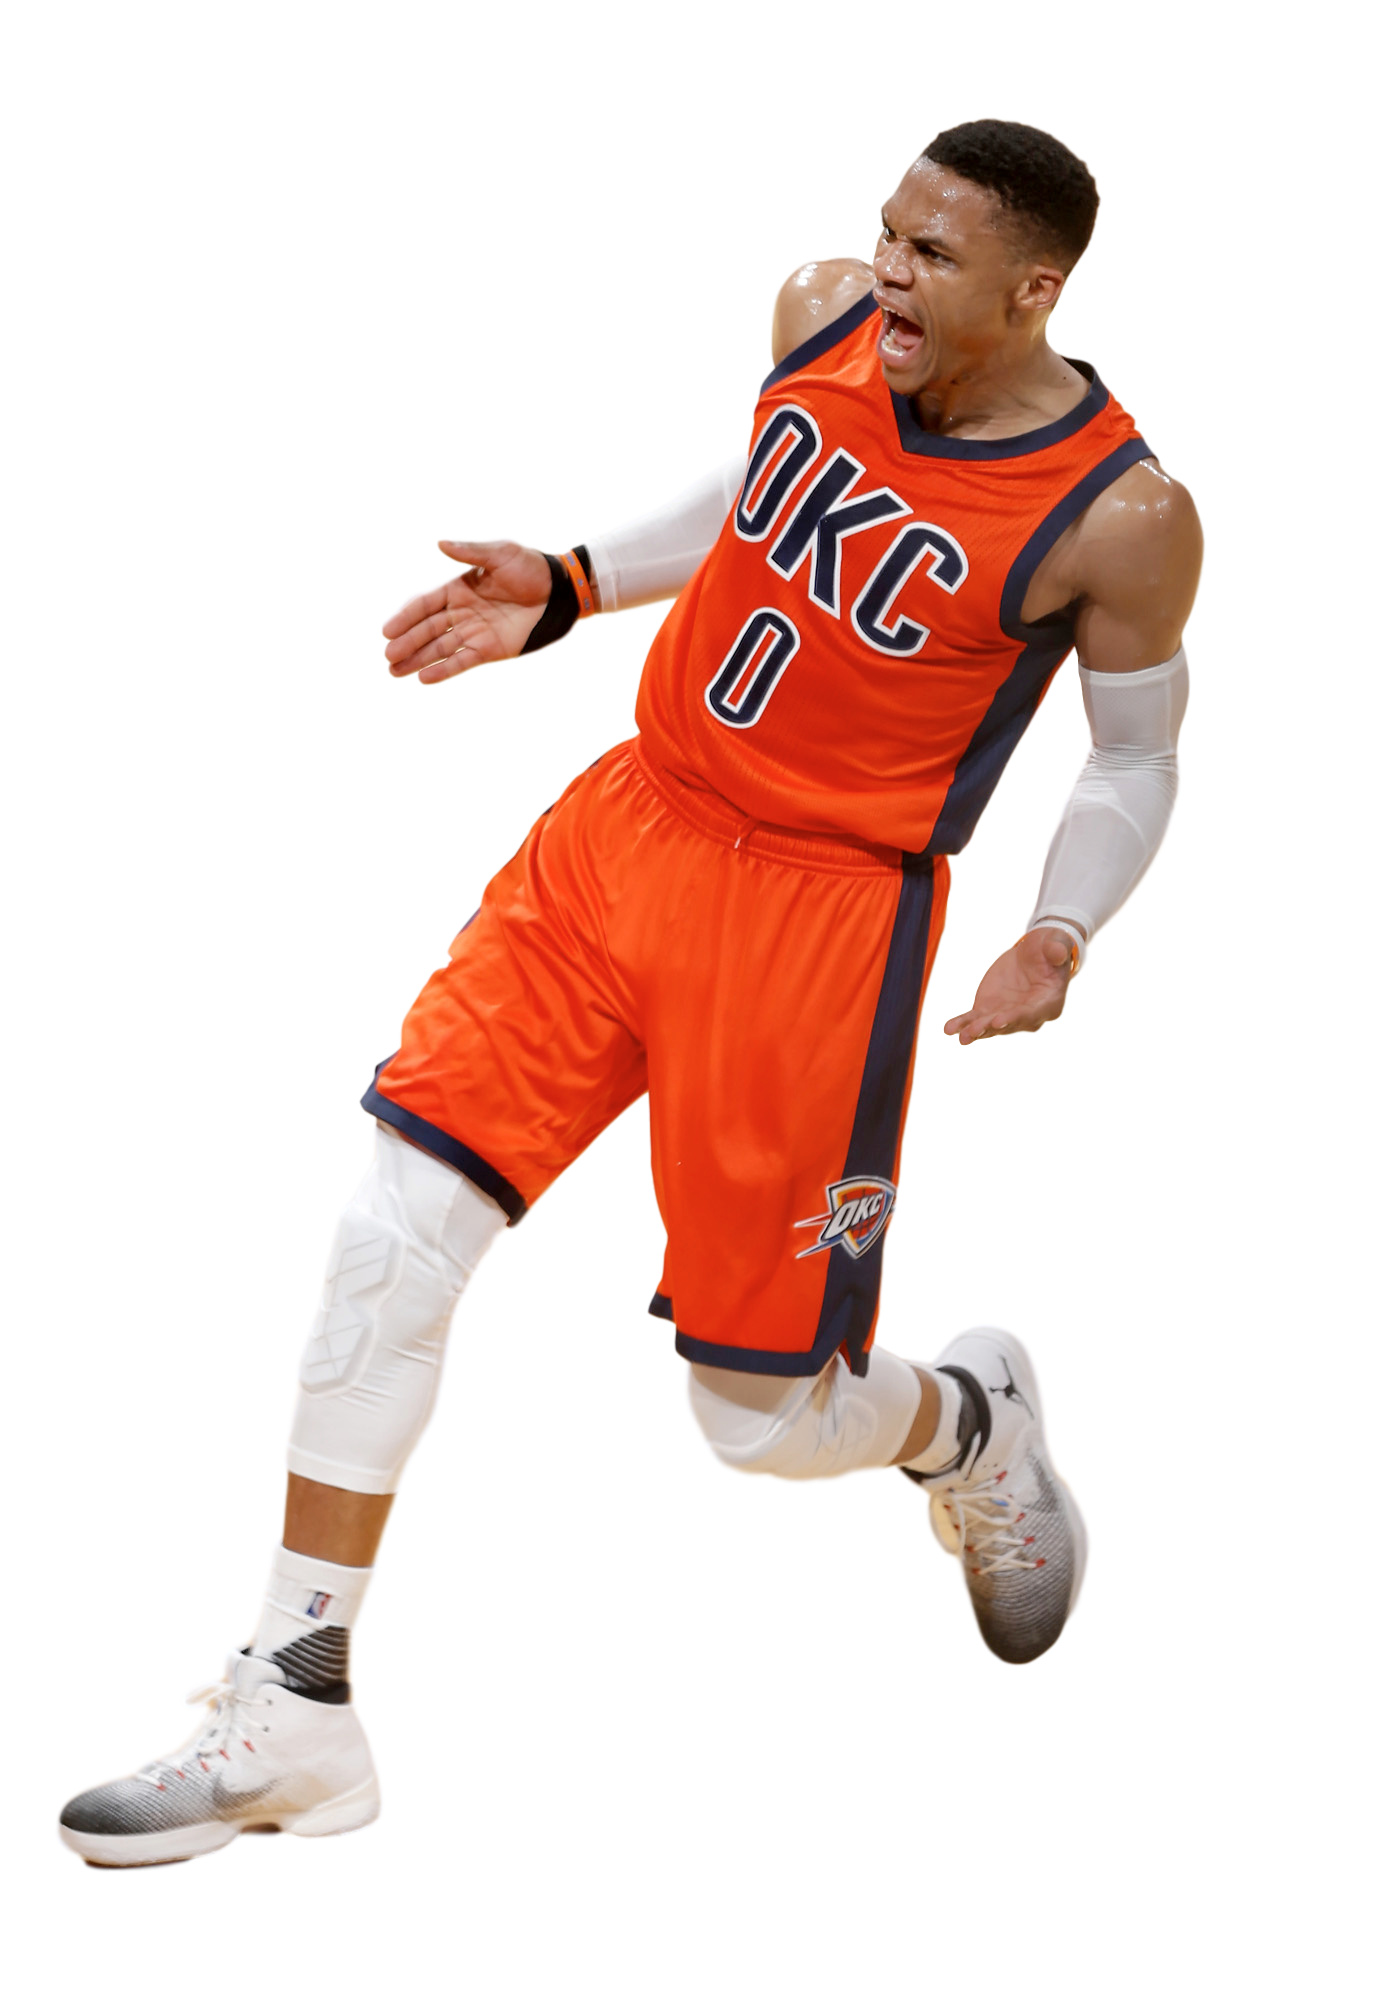 Russell Westbrook White Background | Background Ideas